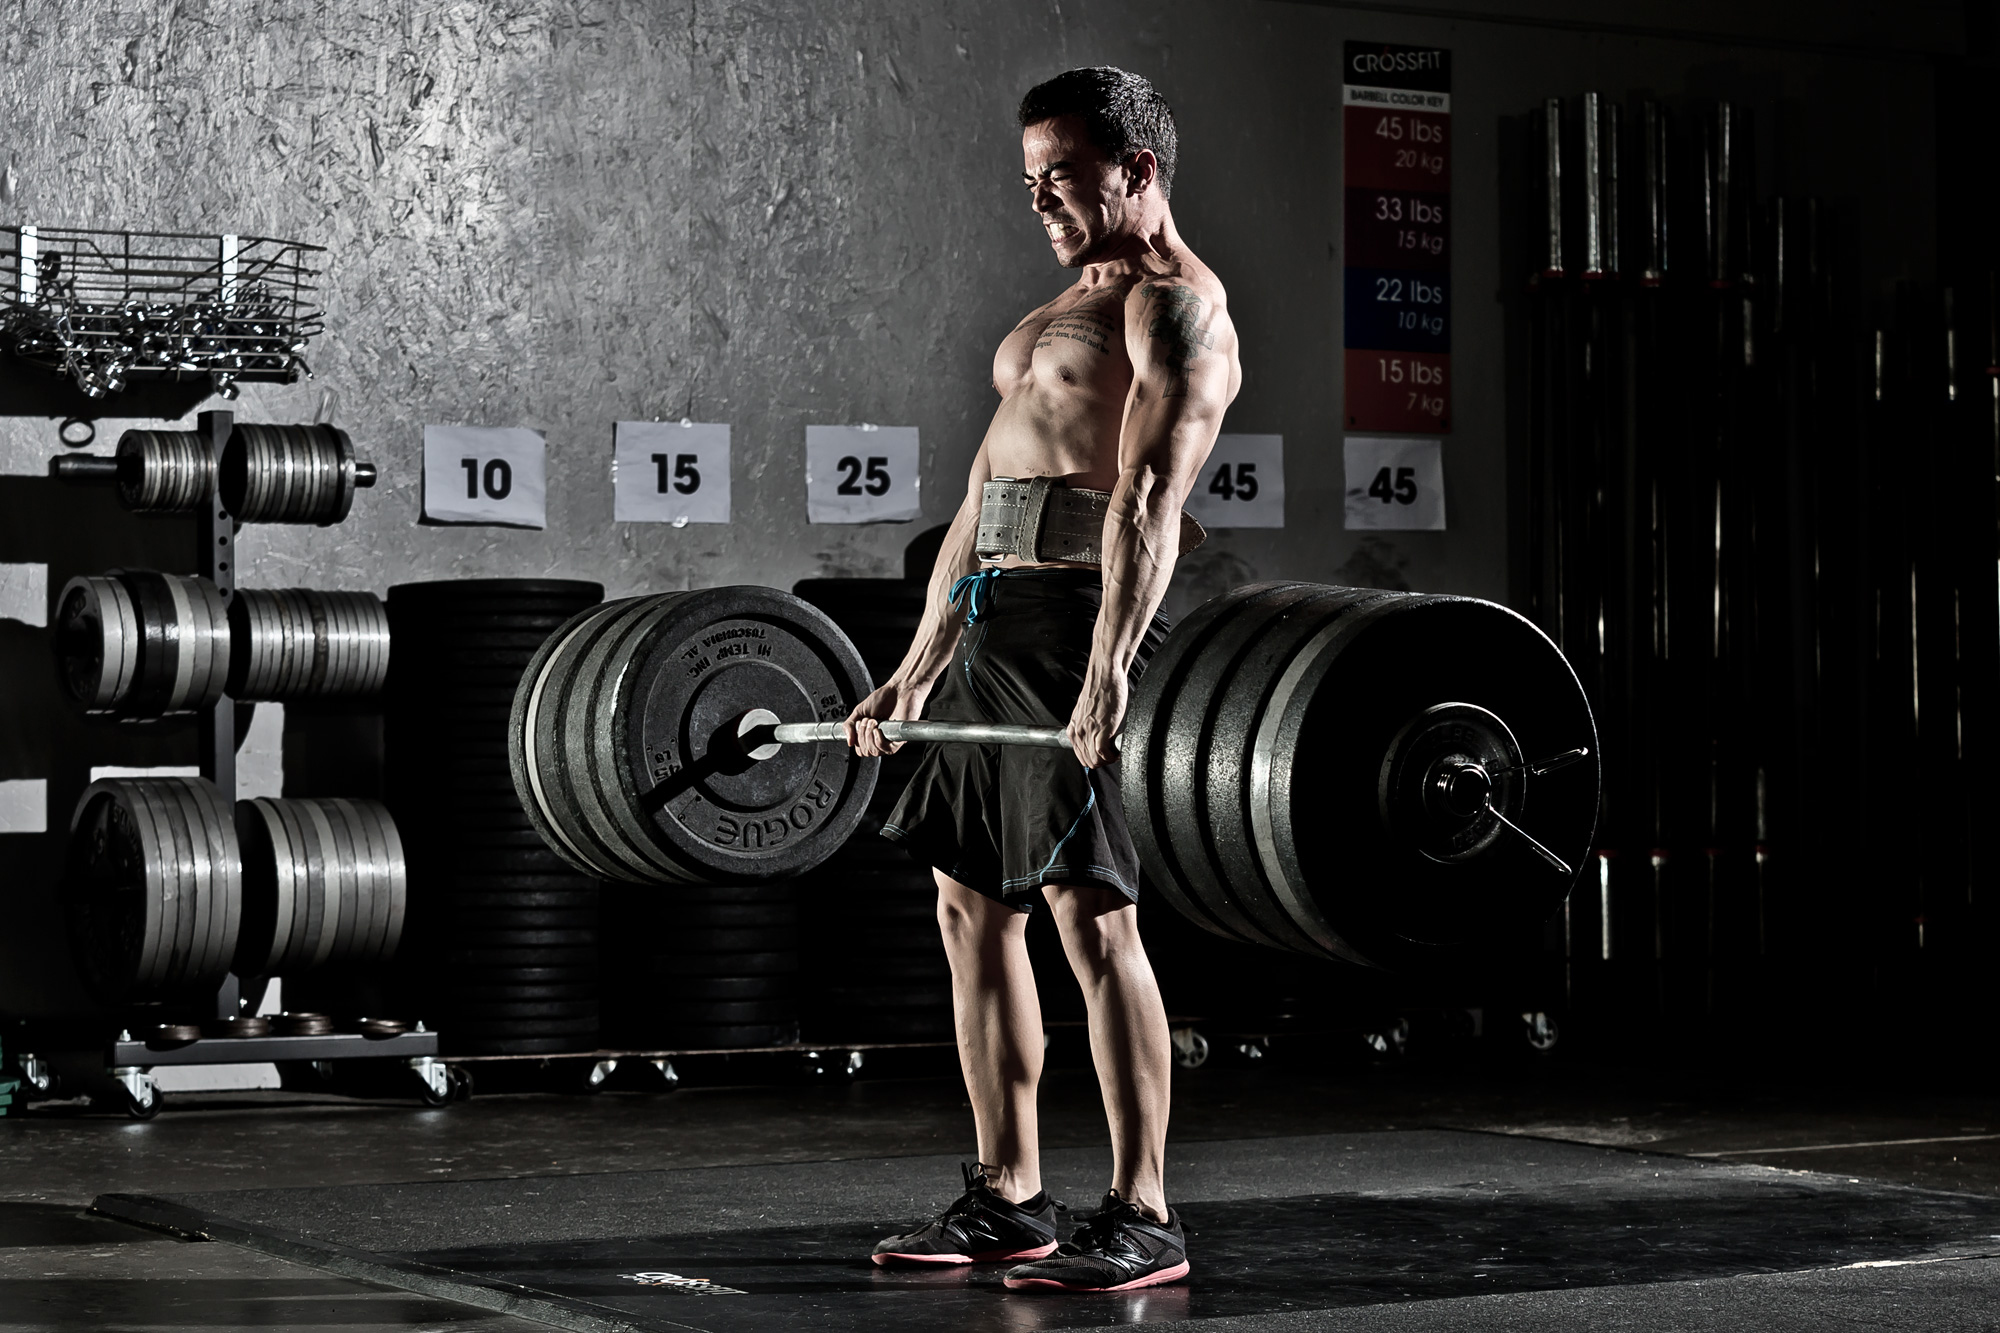 http://way4you.com.ua/images/upload/crossfit-007.jpg